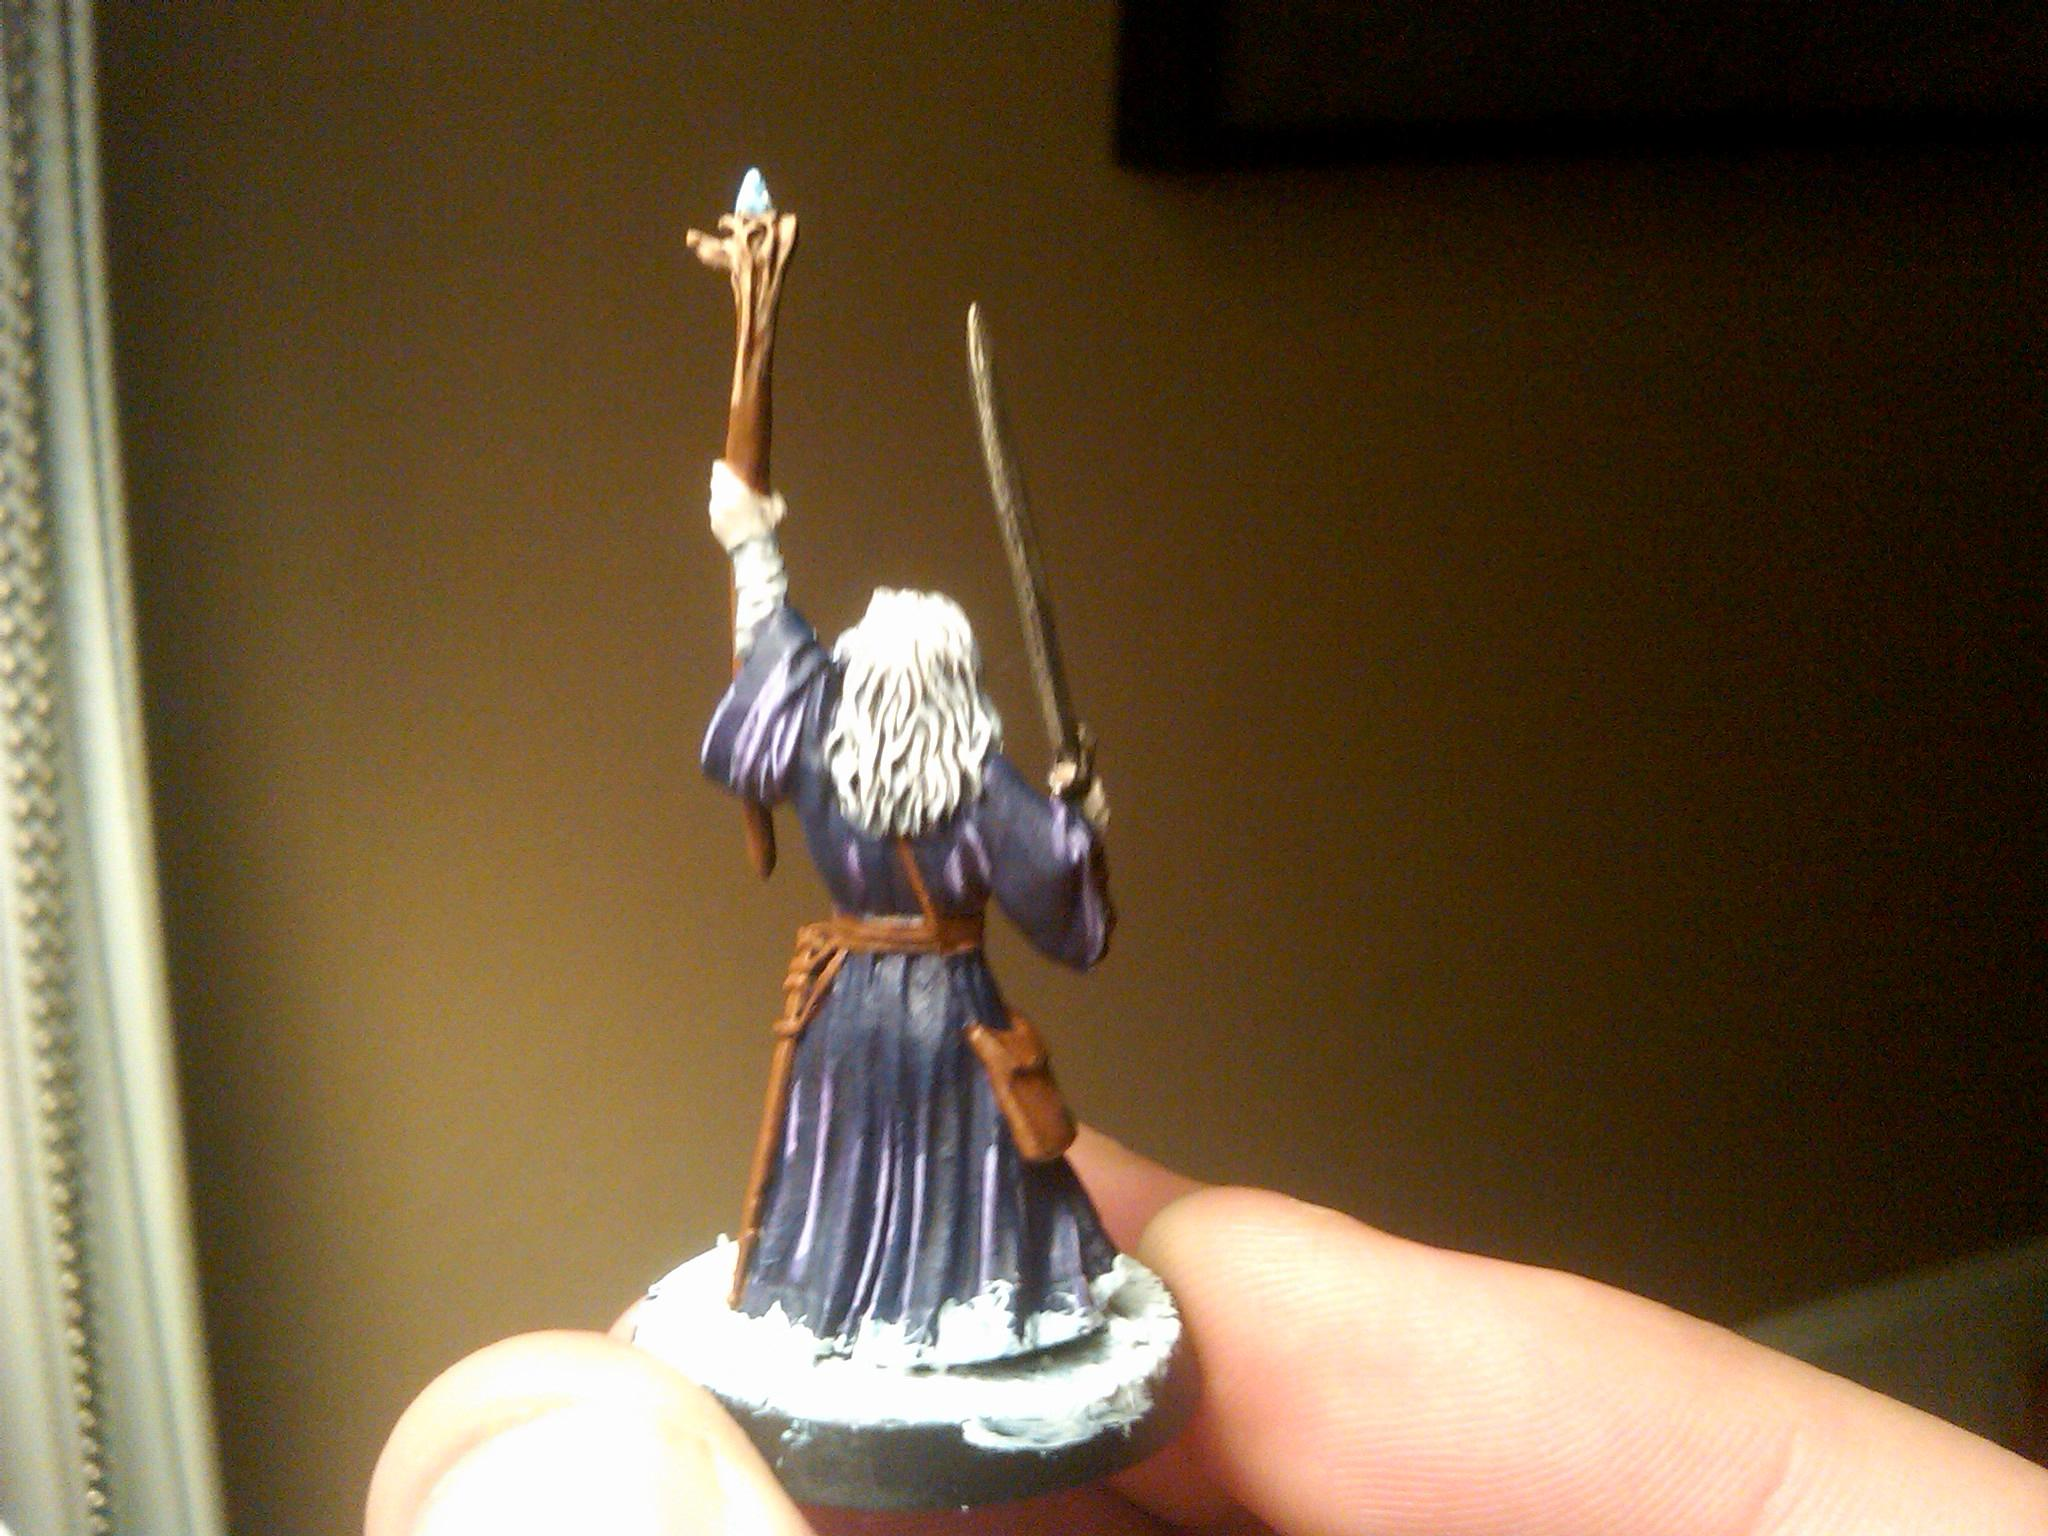 Dark Elves, Fellowship Of The Ring, Gandalf The Grey, Lord Of The Rings, Warriors